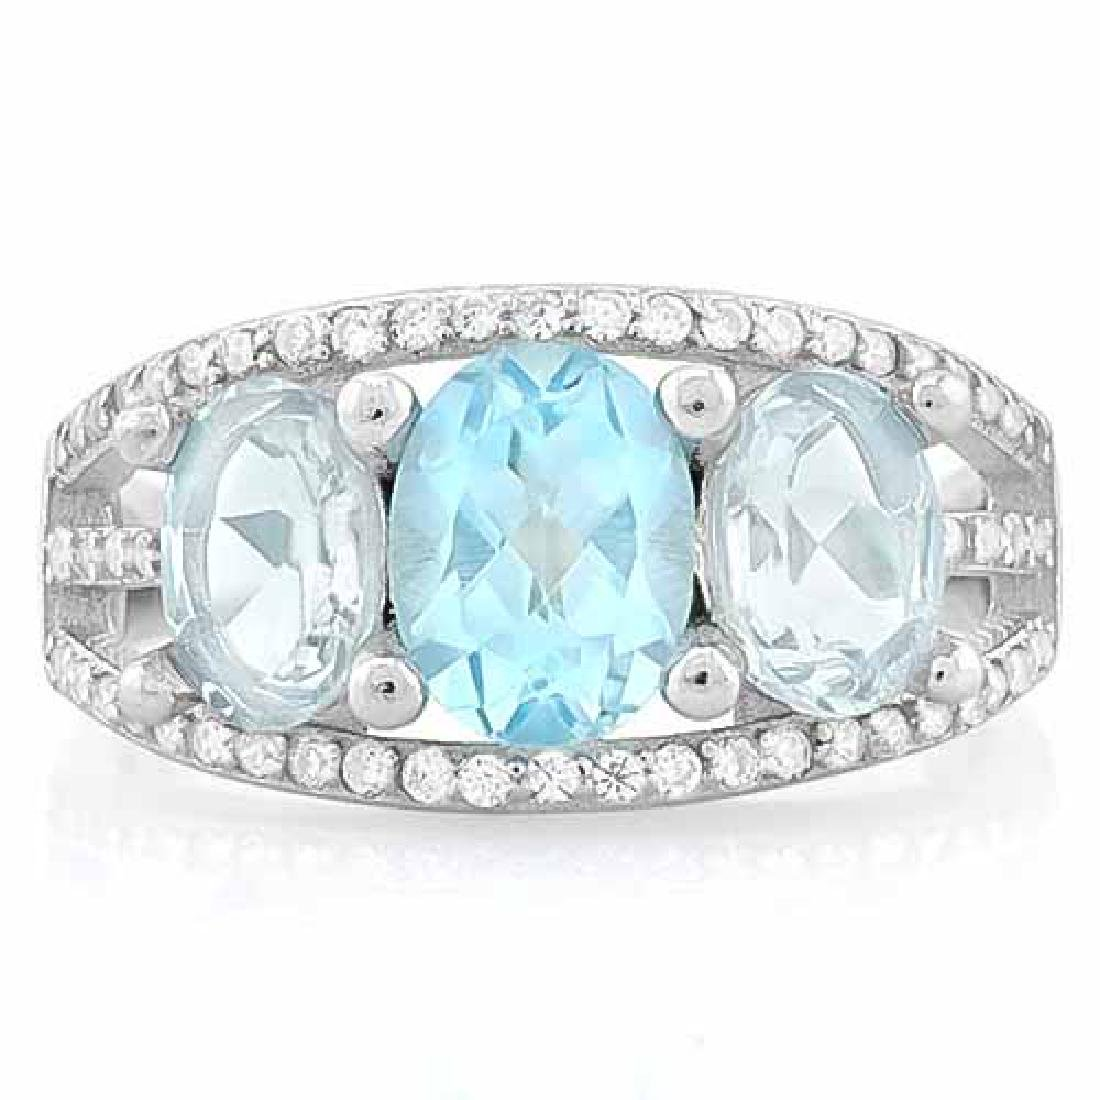 BABY SWISS BLUE TOPAZ & 3 CARAT AQUAMARINE 925 STERLING